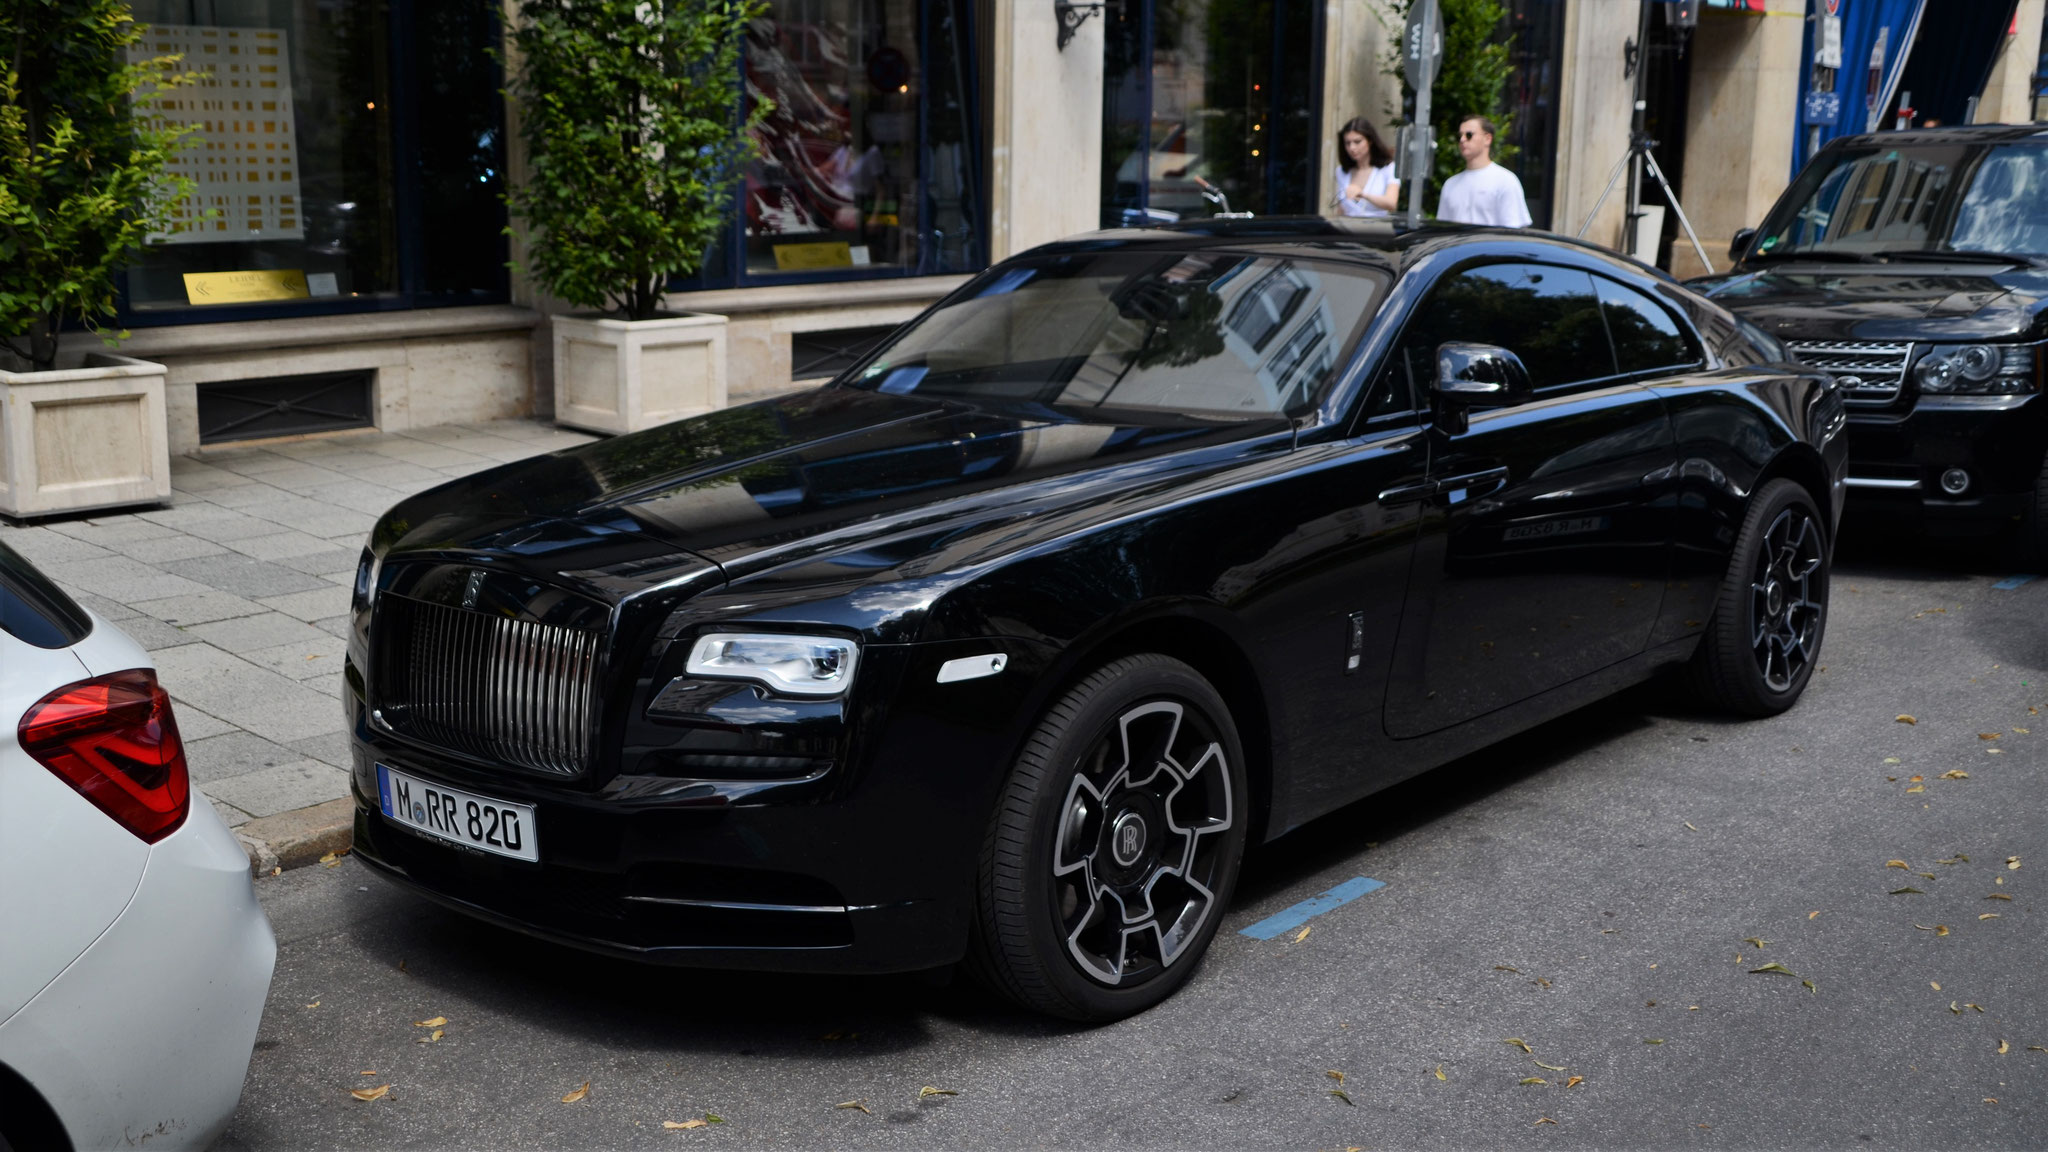 Rolls Royce Wraith Black Badge - M-RR-820